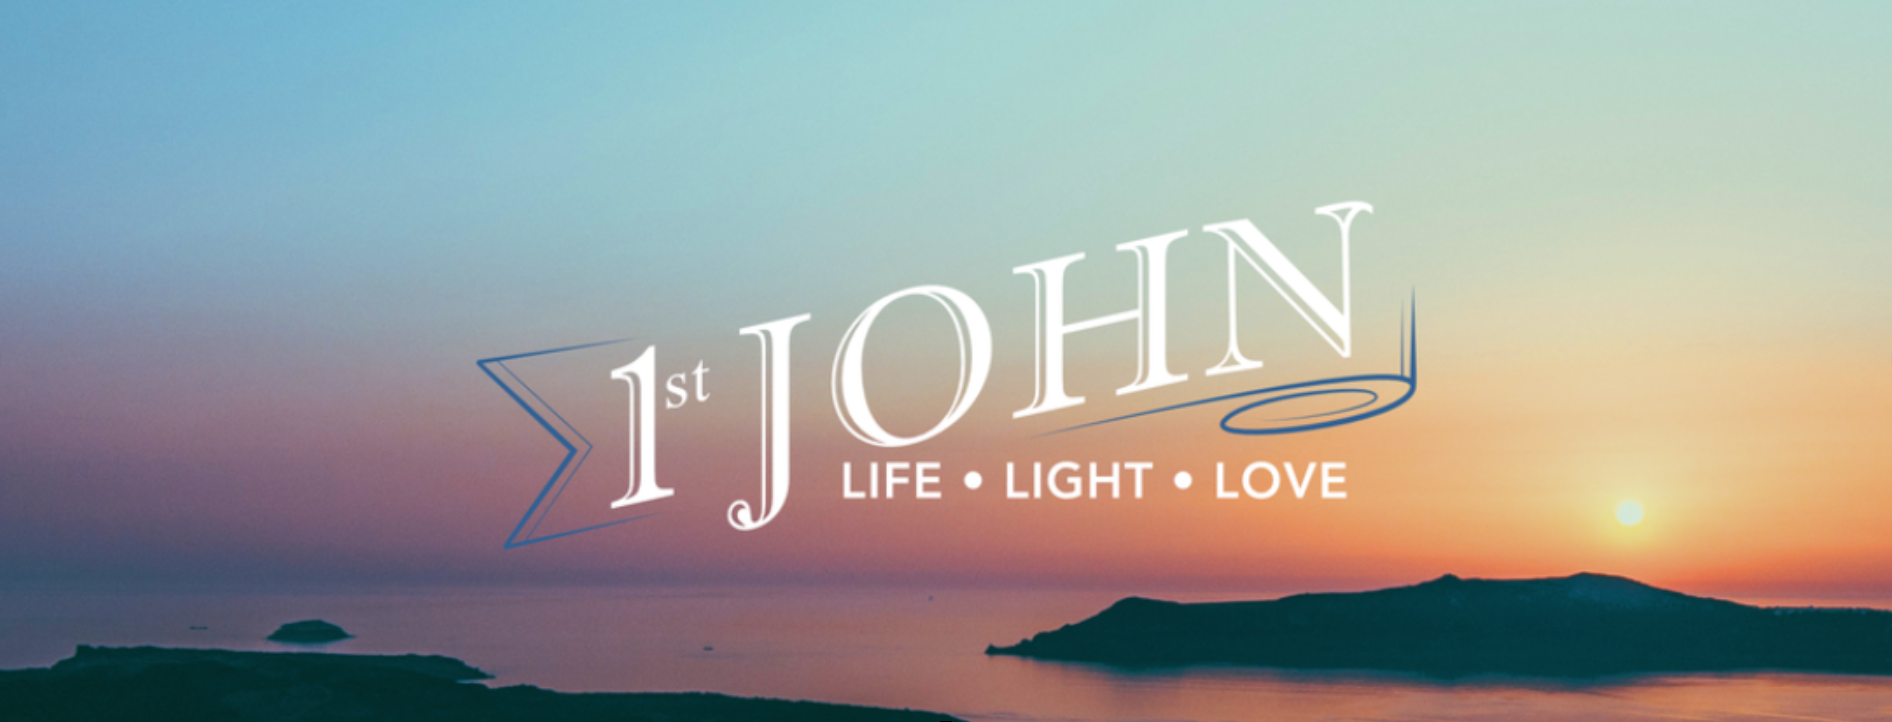 1John-FB Cover.png